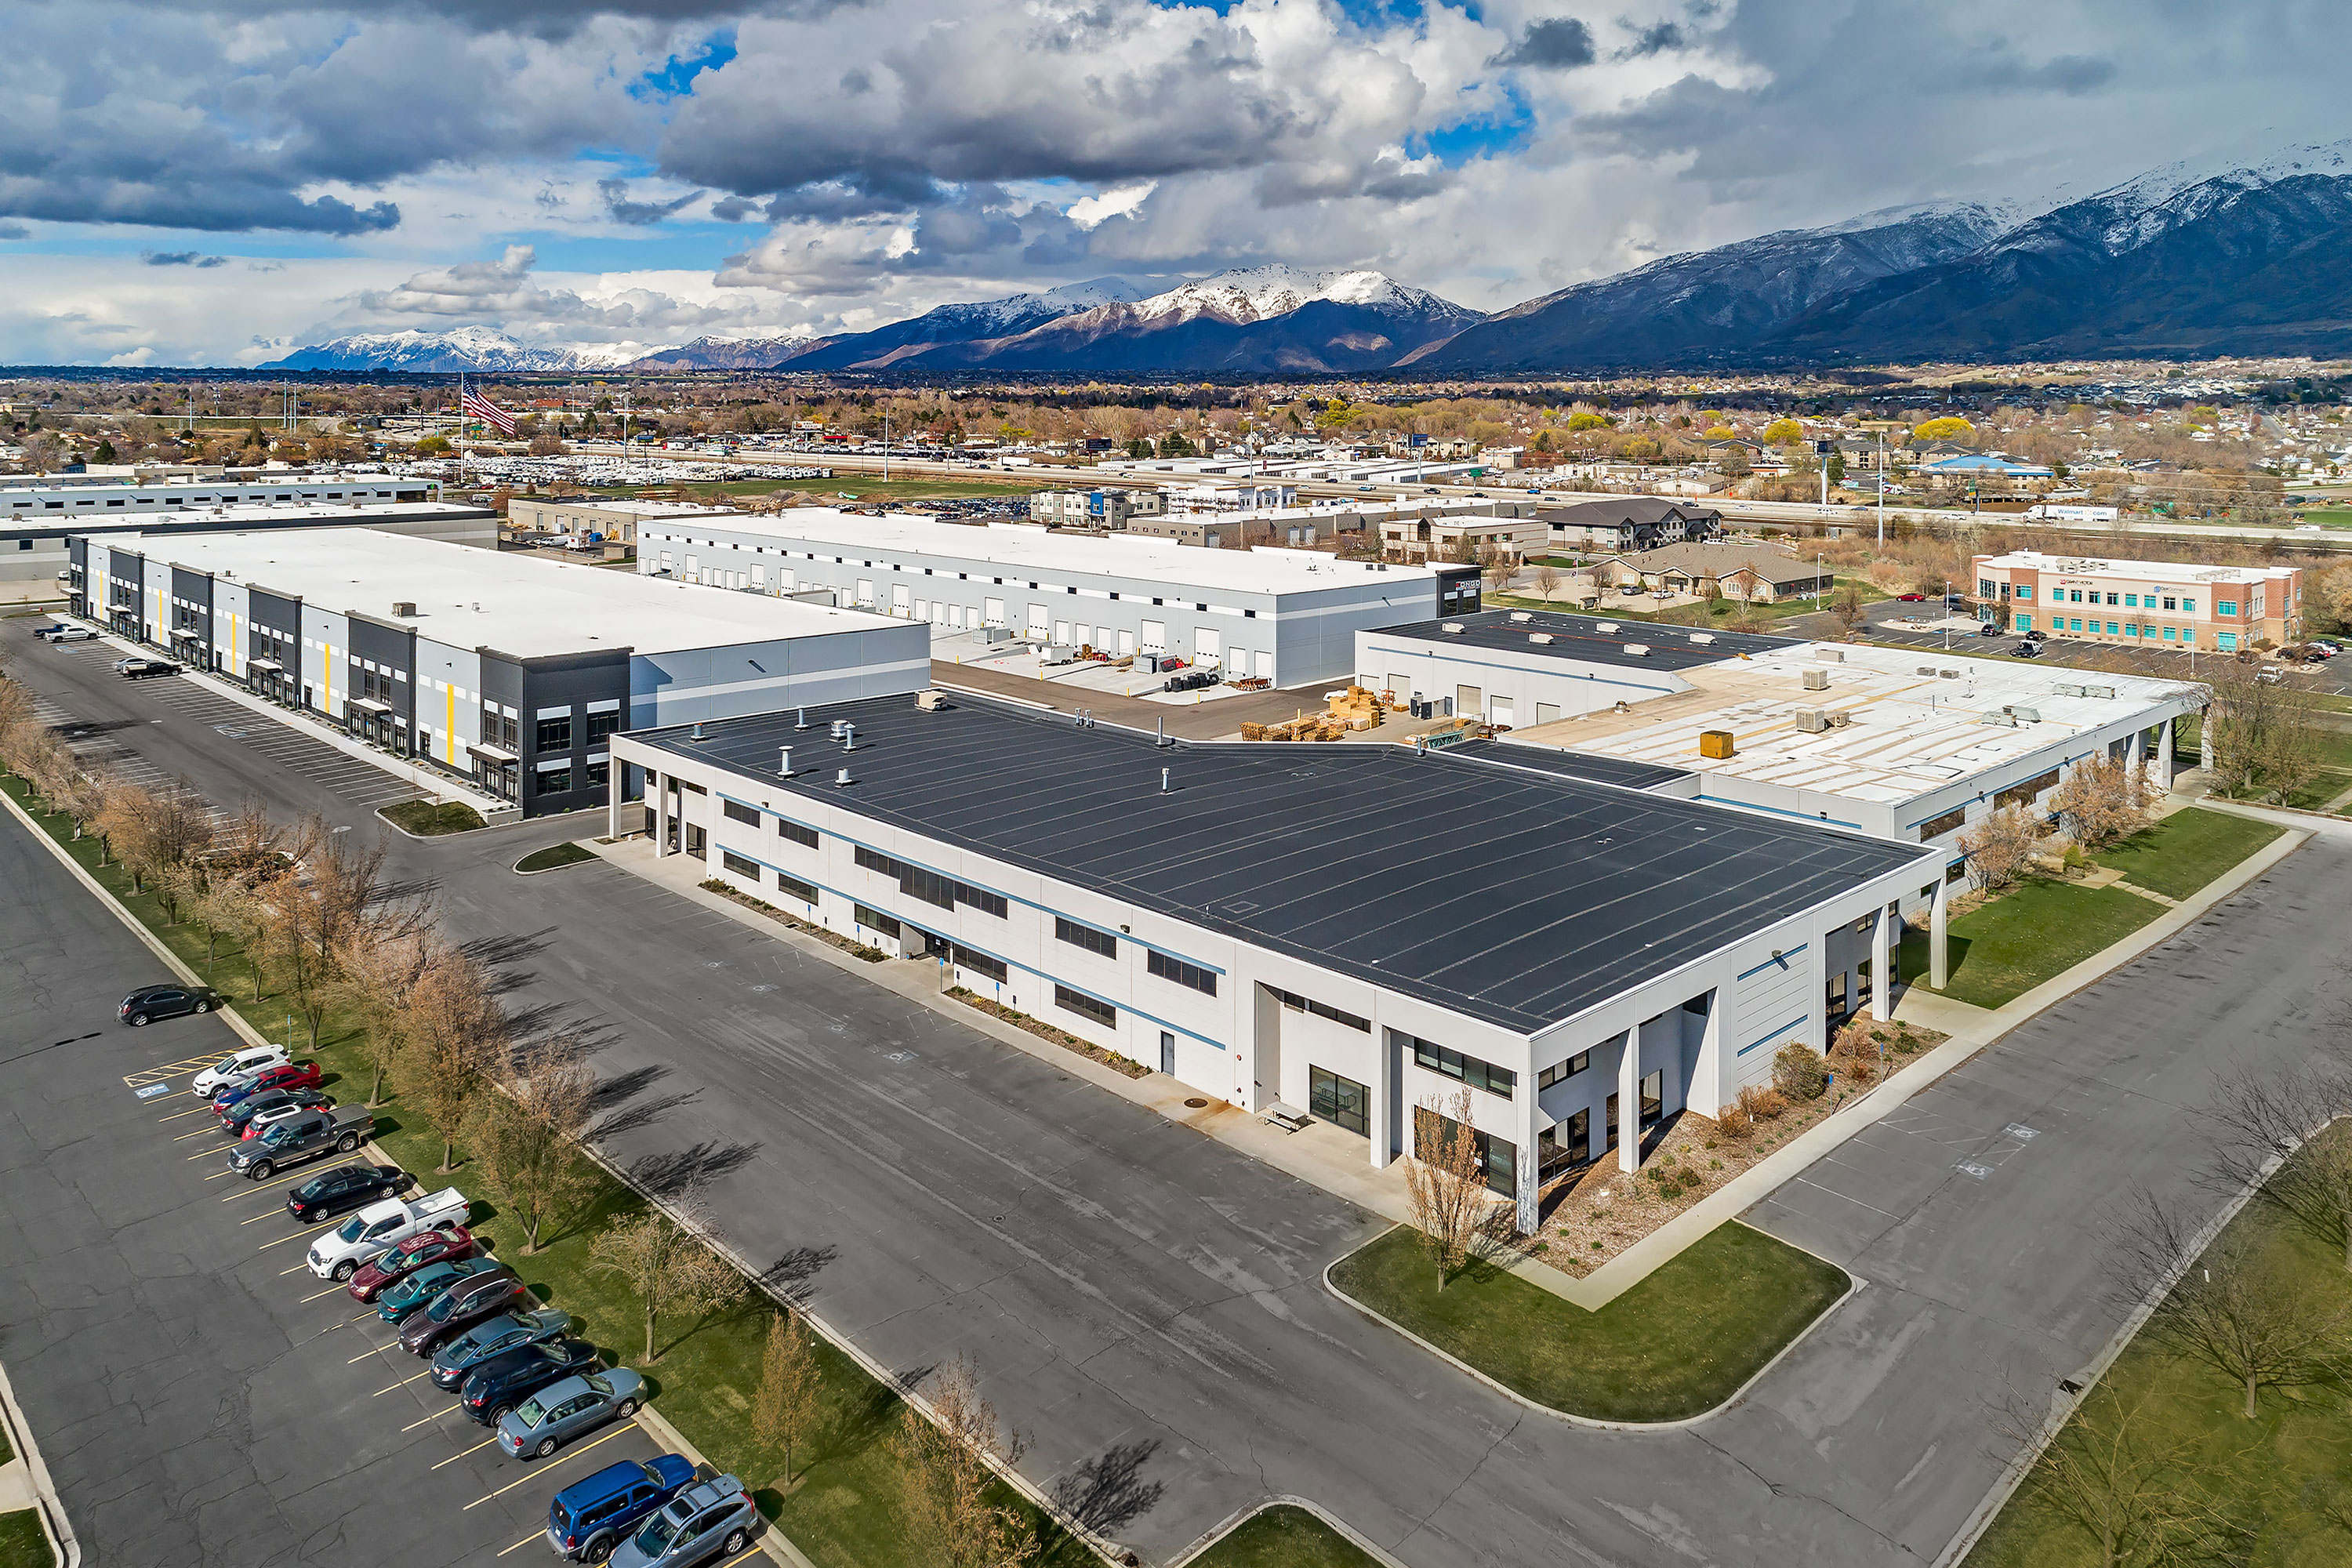 Commercial Buildings - Kaysville, Utah. Aerial Photography by Alan Blakely.